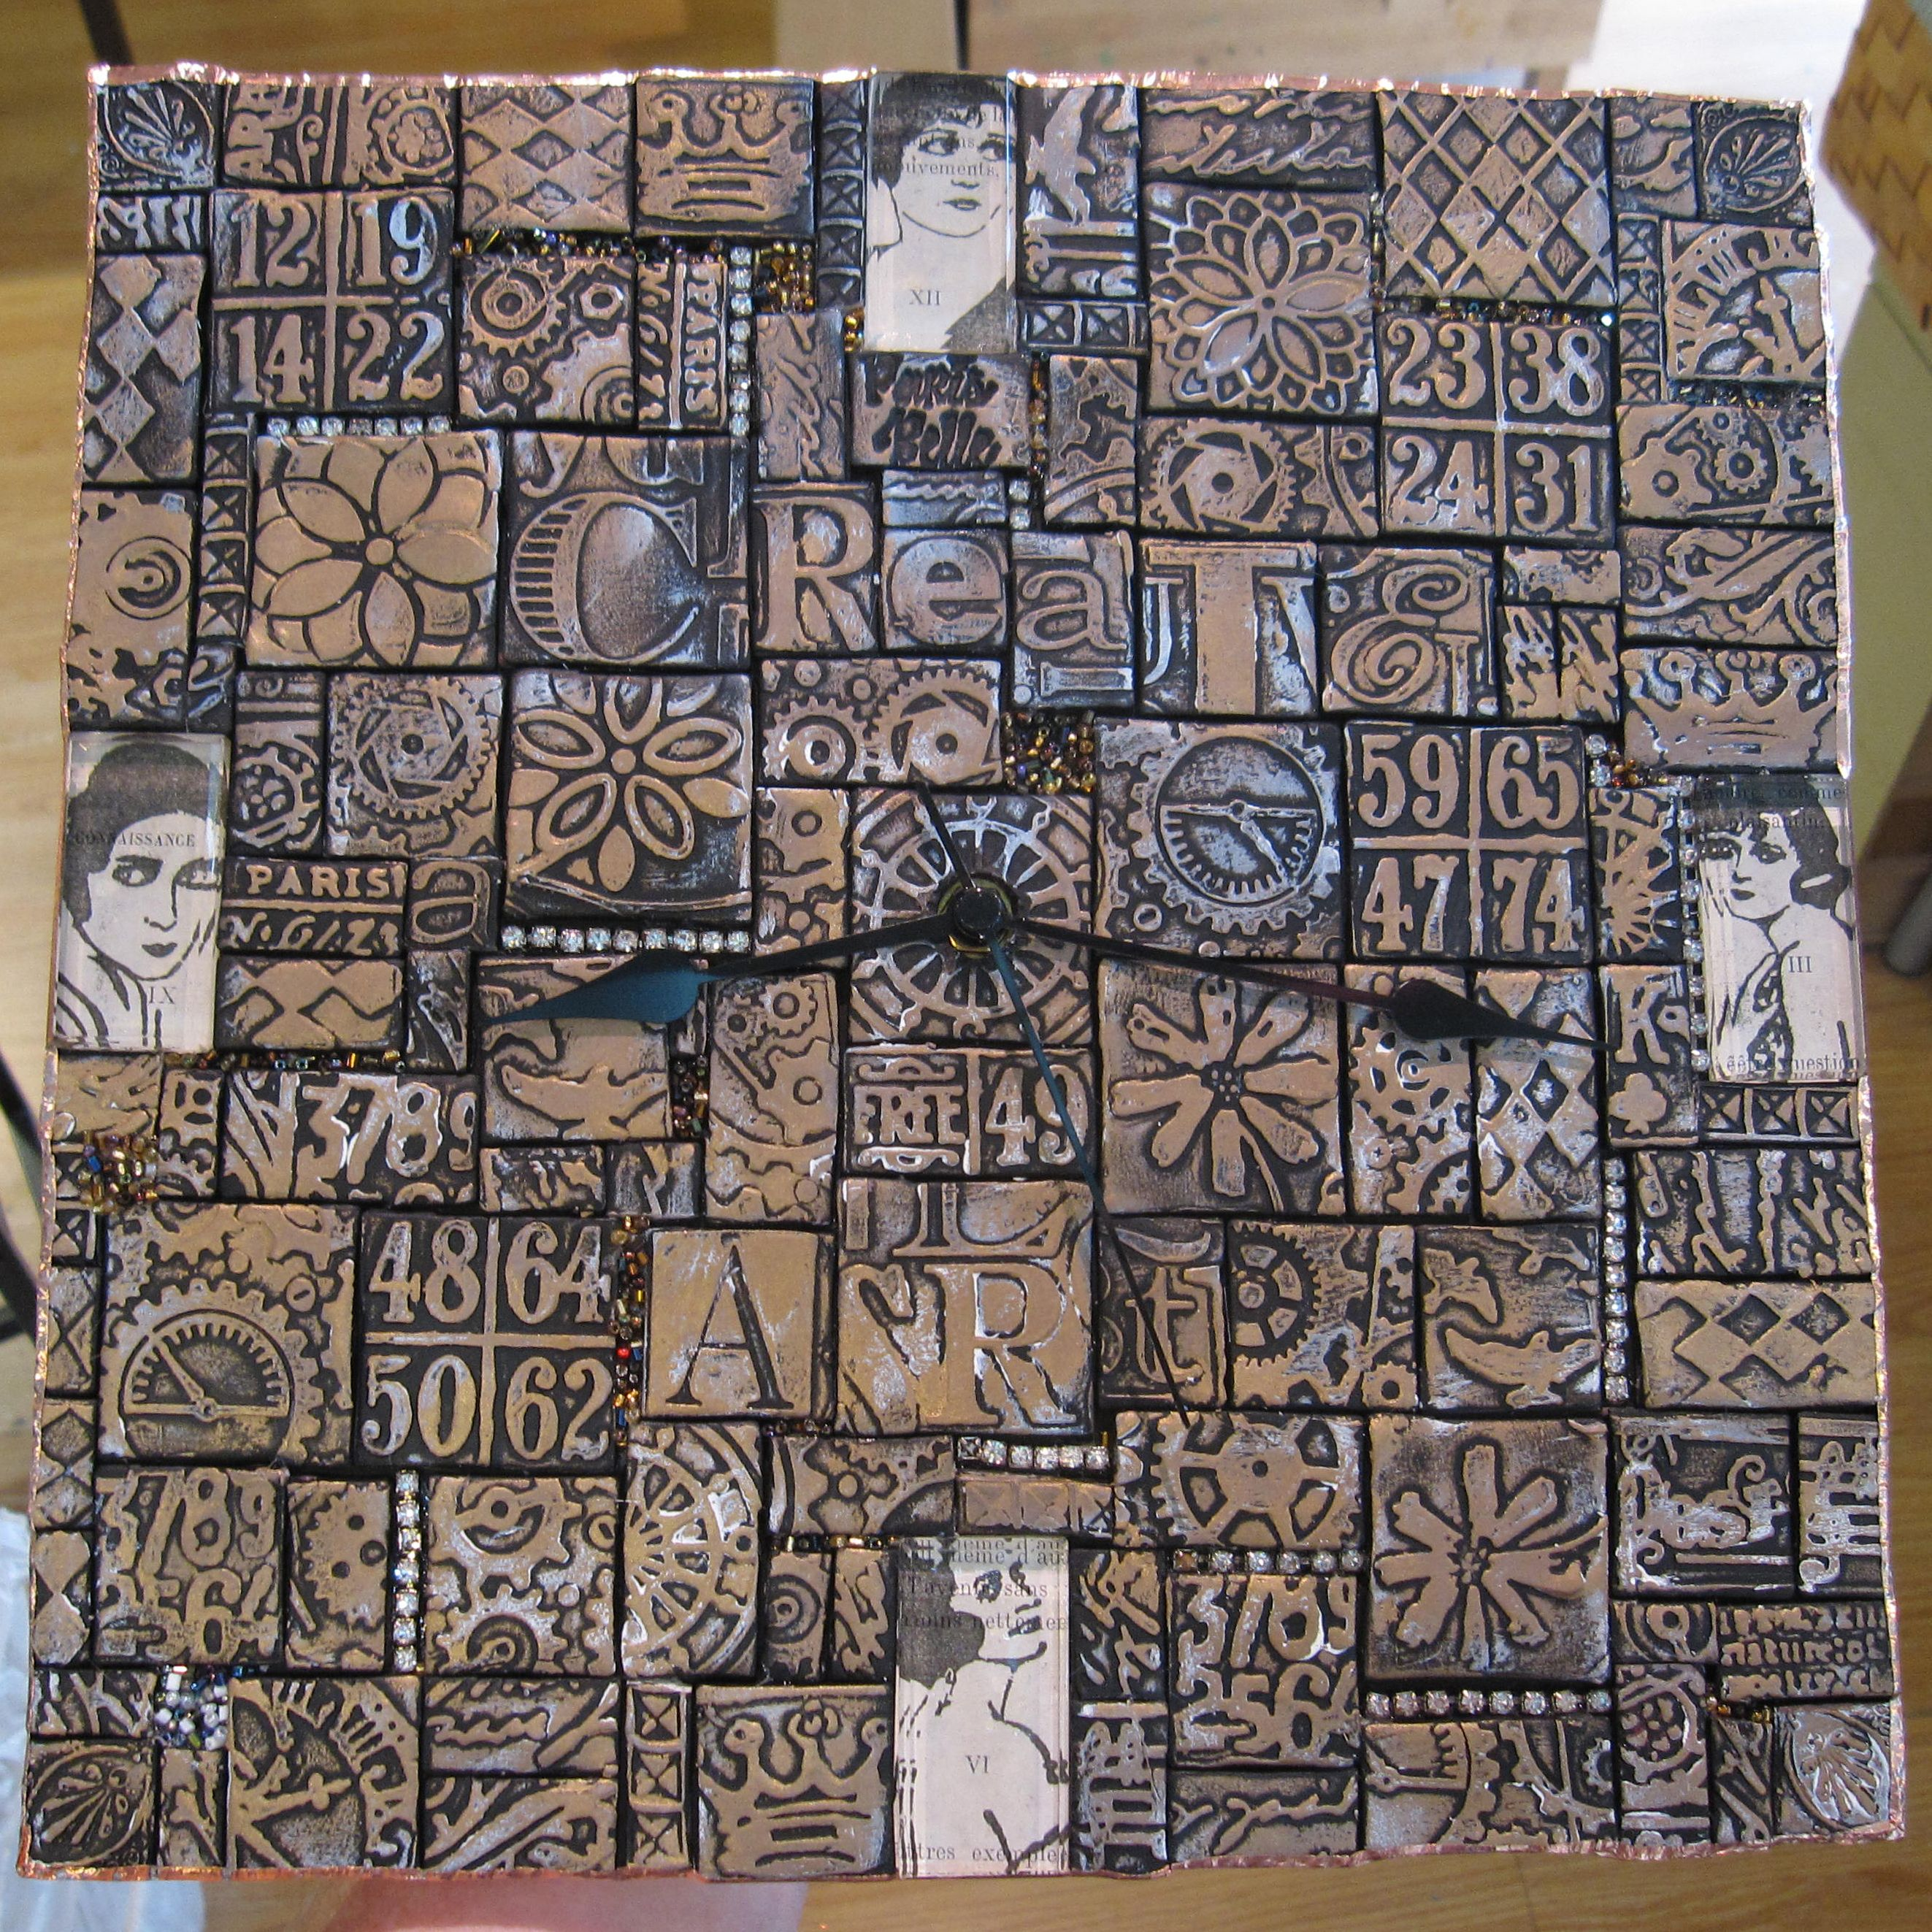 Polymer Clay Tiled Clock This Is Beautiful With All The Diffe Tile Bits I